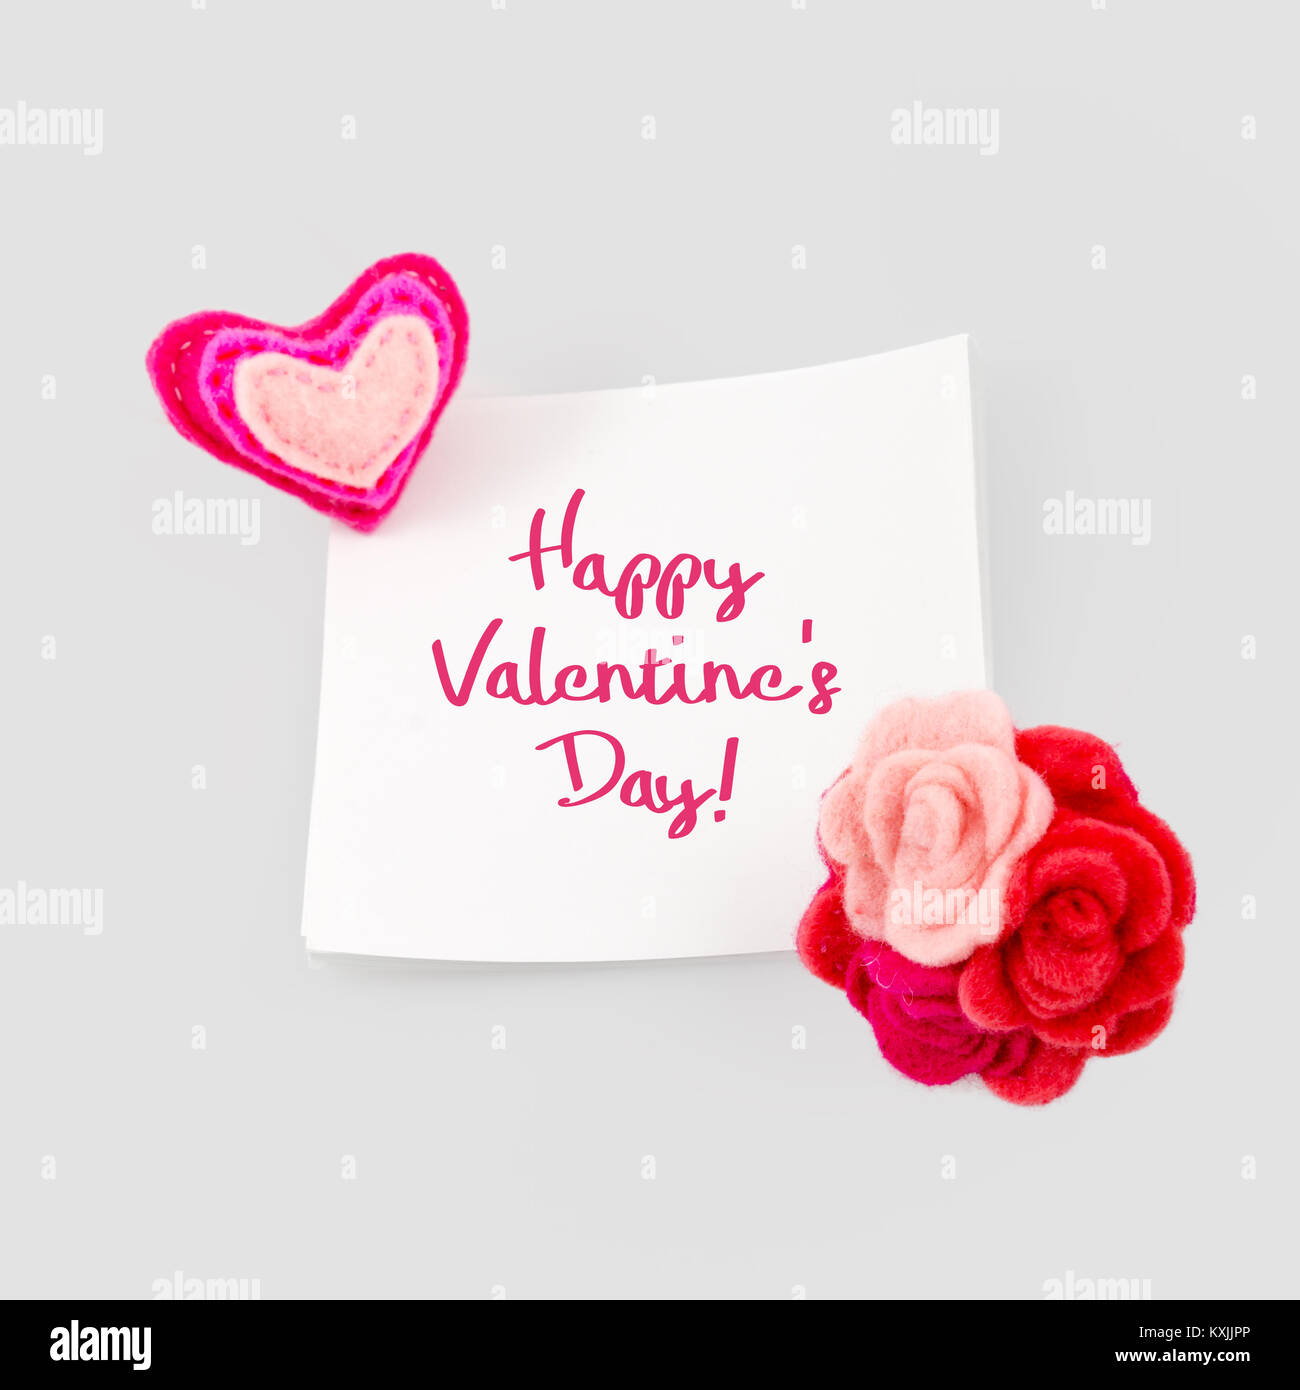 Happy valentines day greeting card heart and love message on stick happy valentines day greeting card heart and love message on stick note paper m4hsunfo